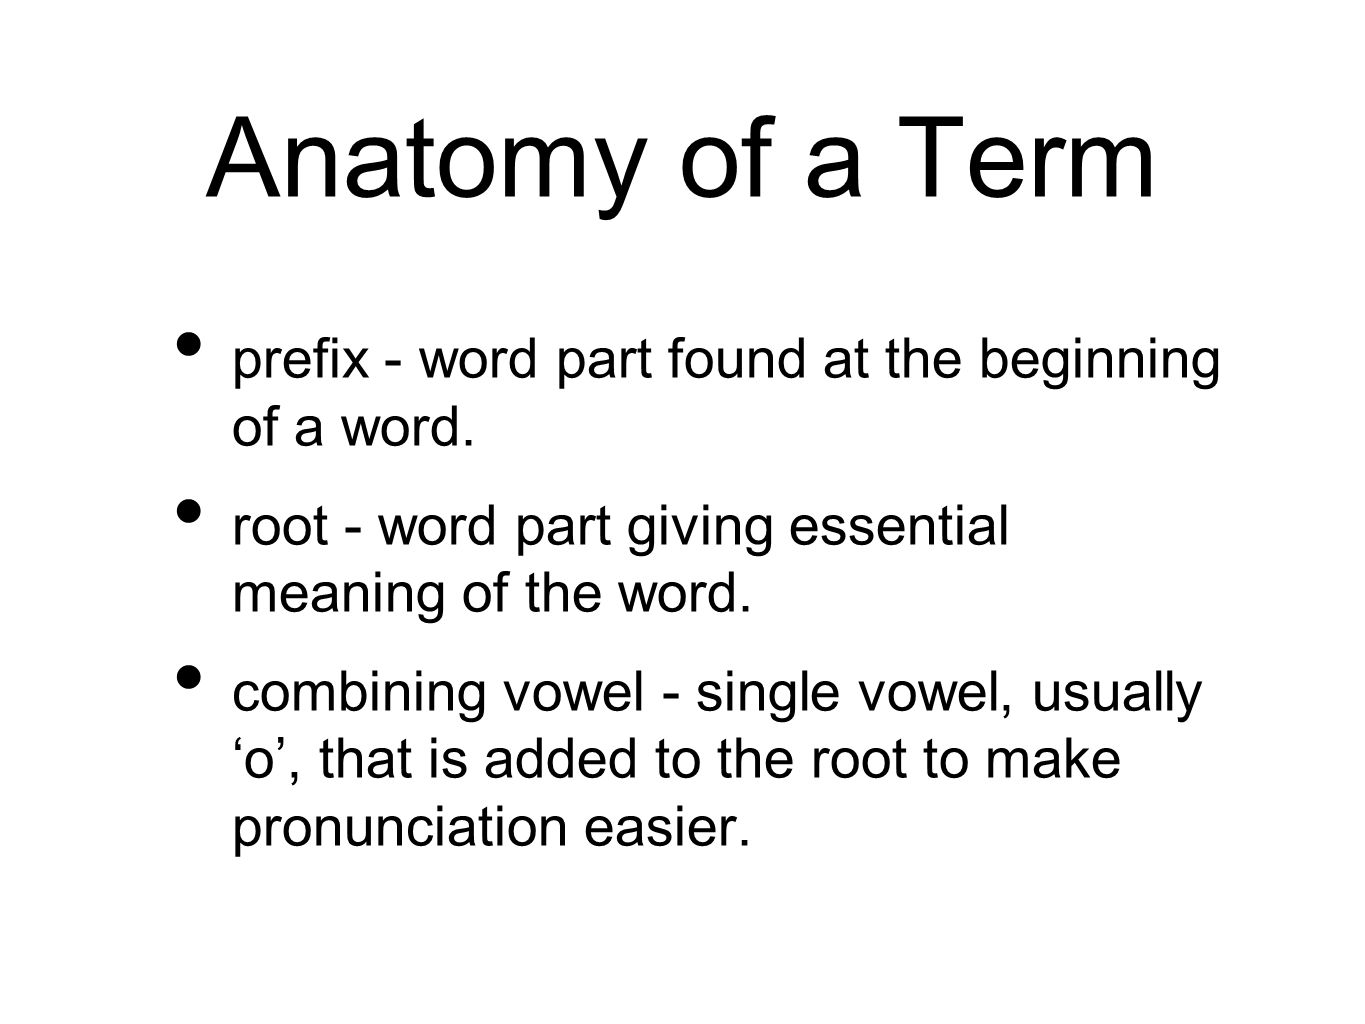 Anatomy root words